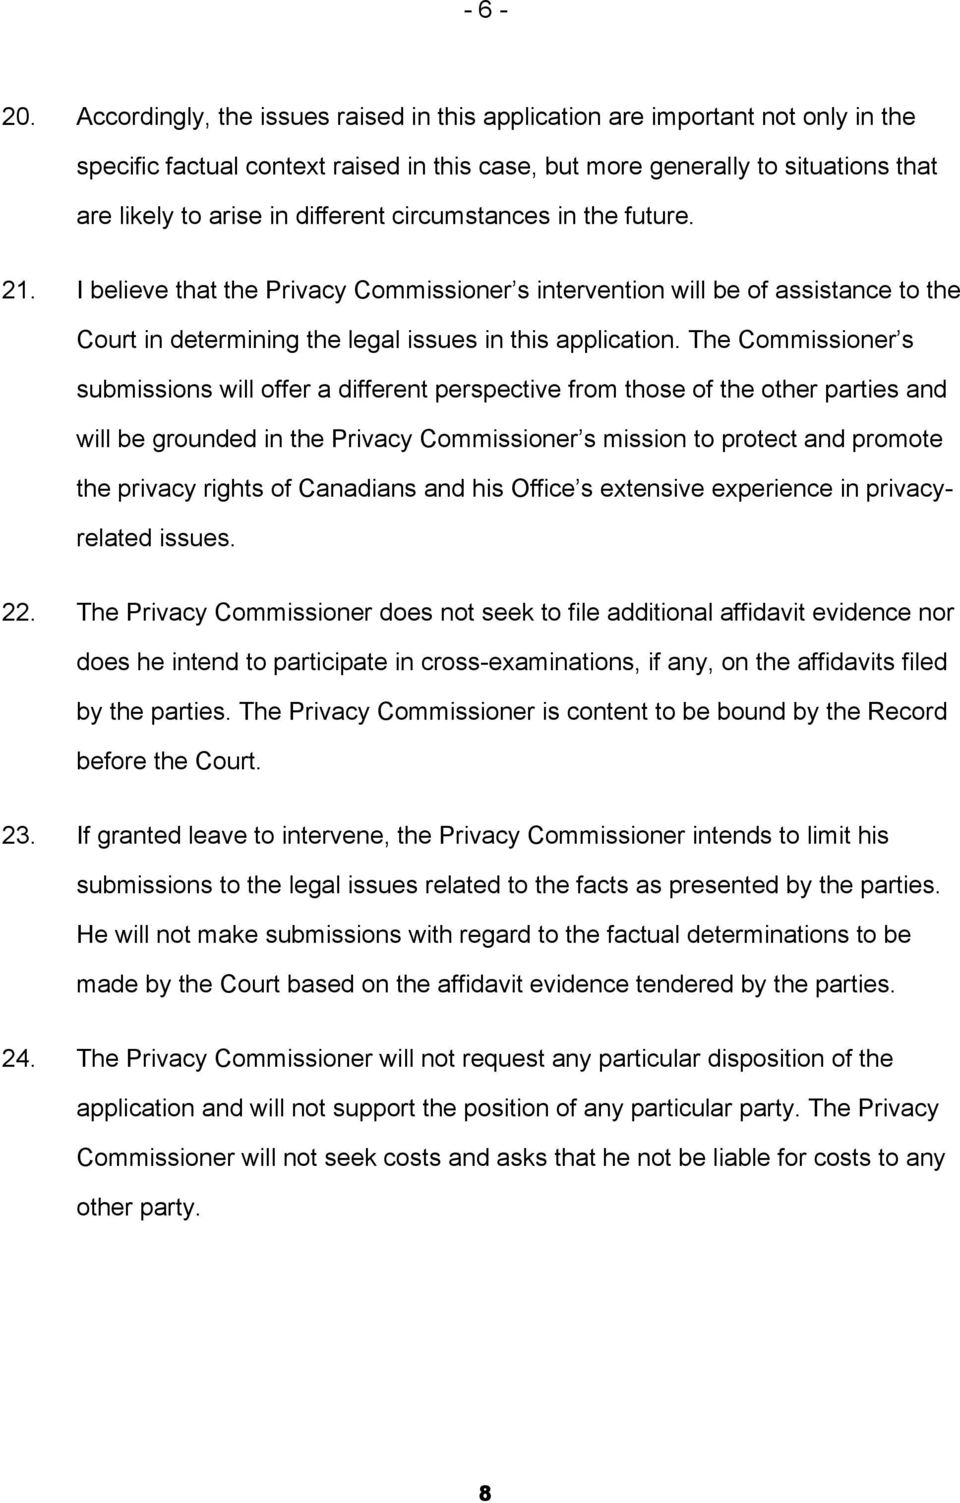 circumstances in the future. 21. I believe that the Privacy Commissioner s intervention will be of assistance to the Court in determining the legal issues in this application.